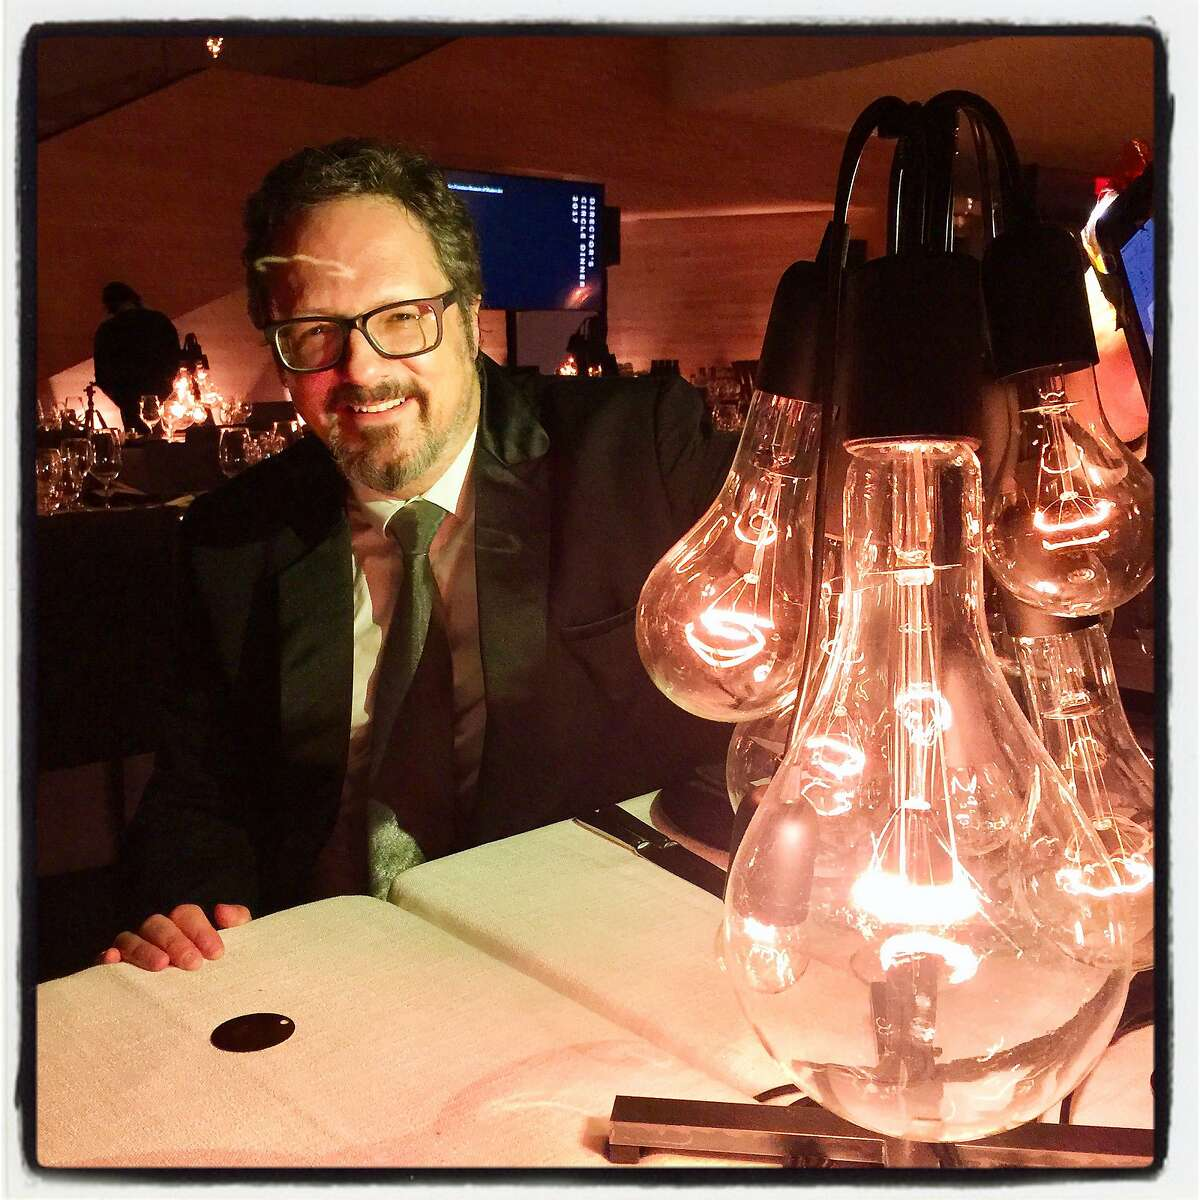 Artist Rafael Lozano-Hemmer and one of his centerpieces at SFMOMA Director's Circle Dinner. Feb. 8 2017.